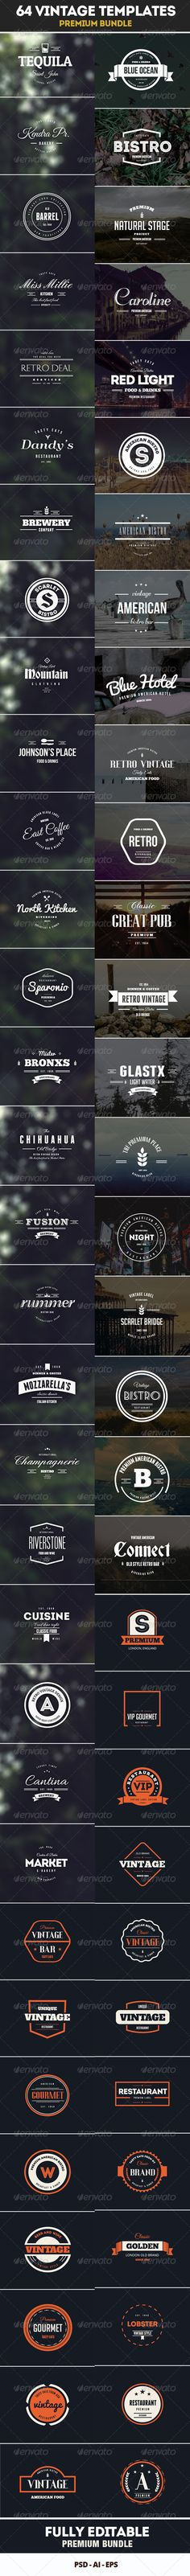 64 Vintage Labels & Badges Logos Bundle Template | Buy and Download: http://graphicriver.net/item/64-vintage-labels-badges-logos-bundle/7993973?WT.ac=category_thumb&WT.z_author=designdistrictmx&ref=ksioks